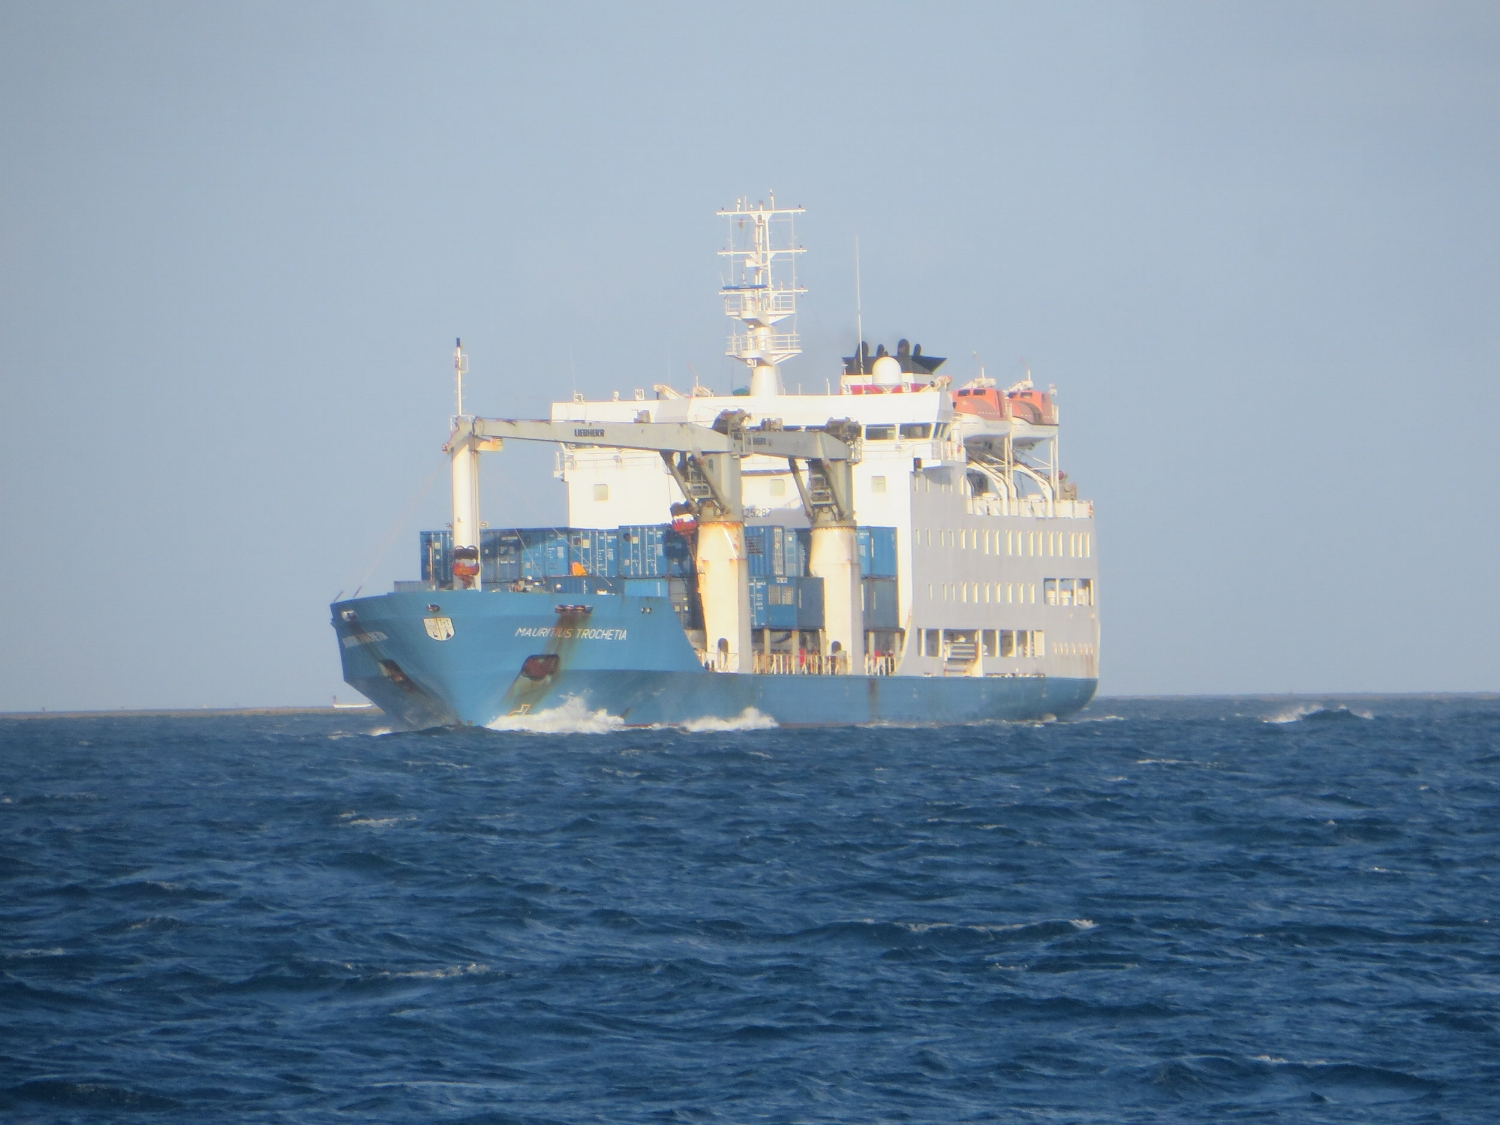 Large supply ships need room to maneuver.